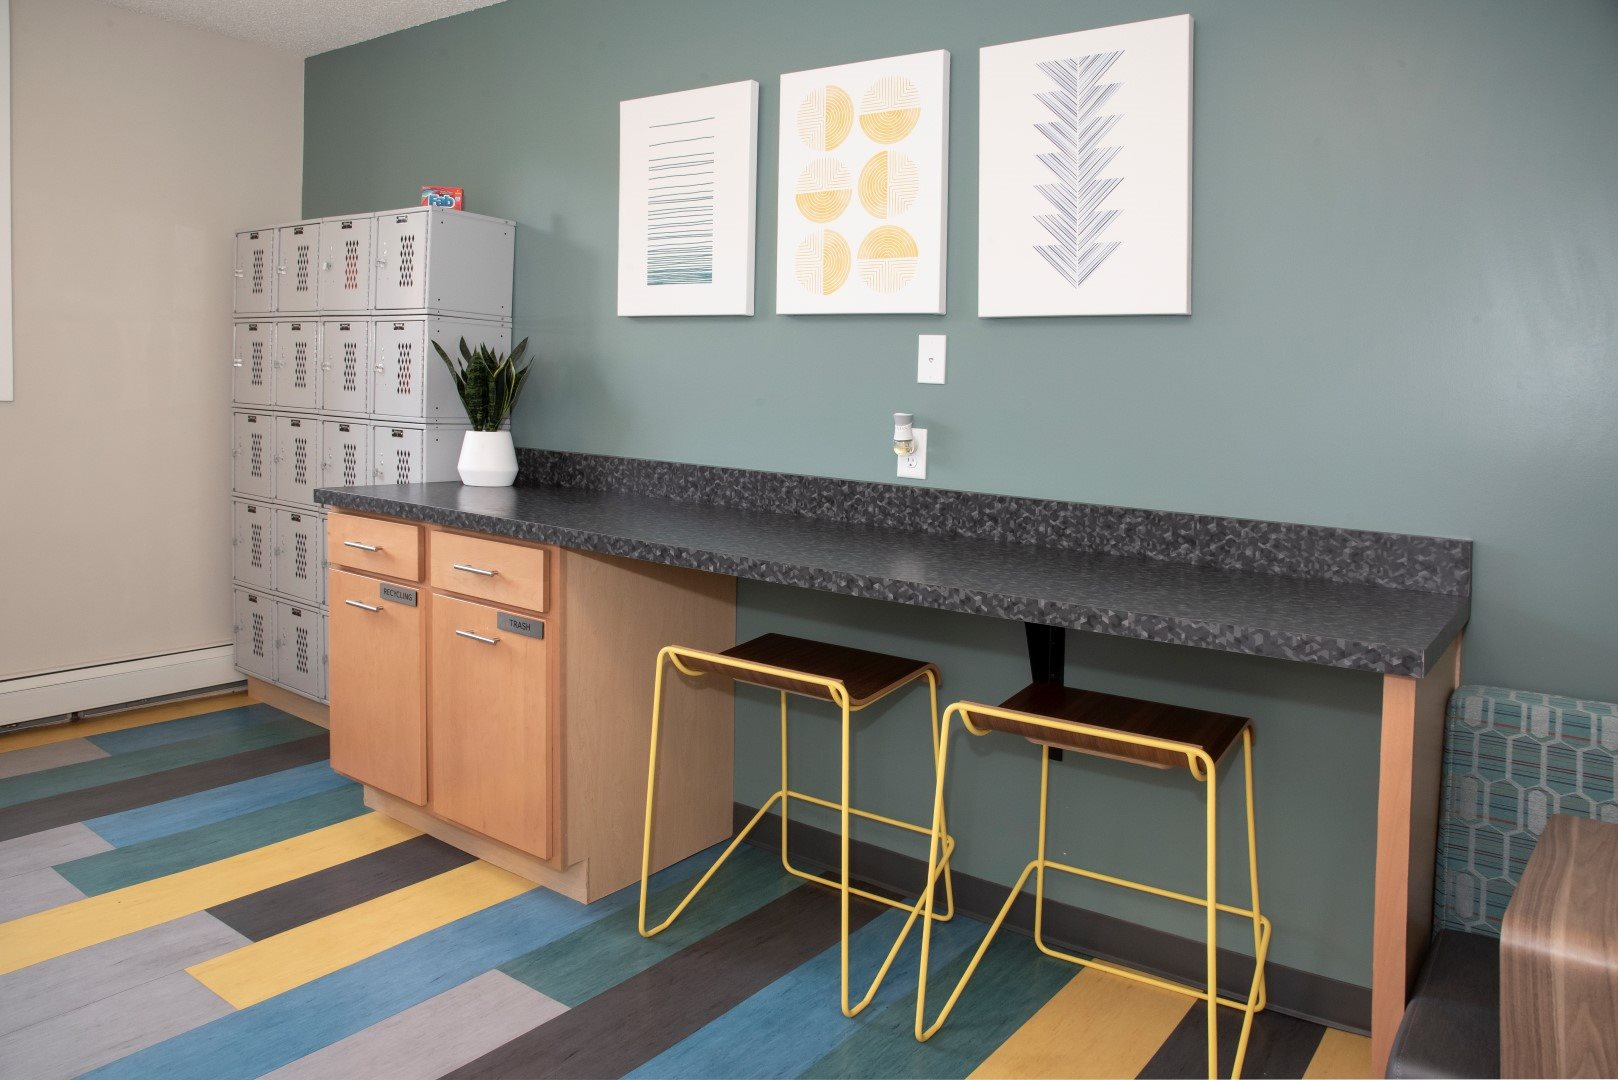 laundry lounge with lockers for laundry storage